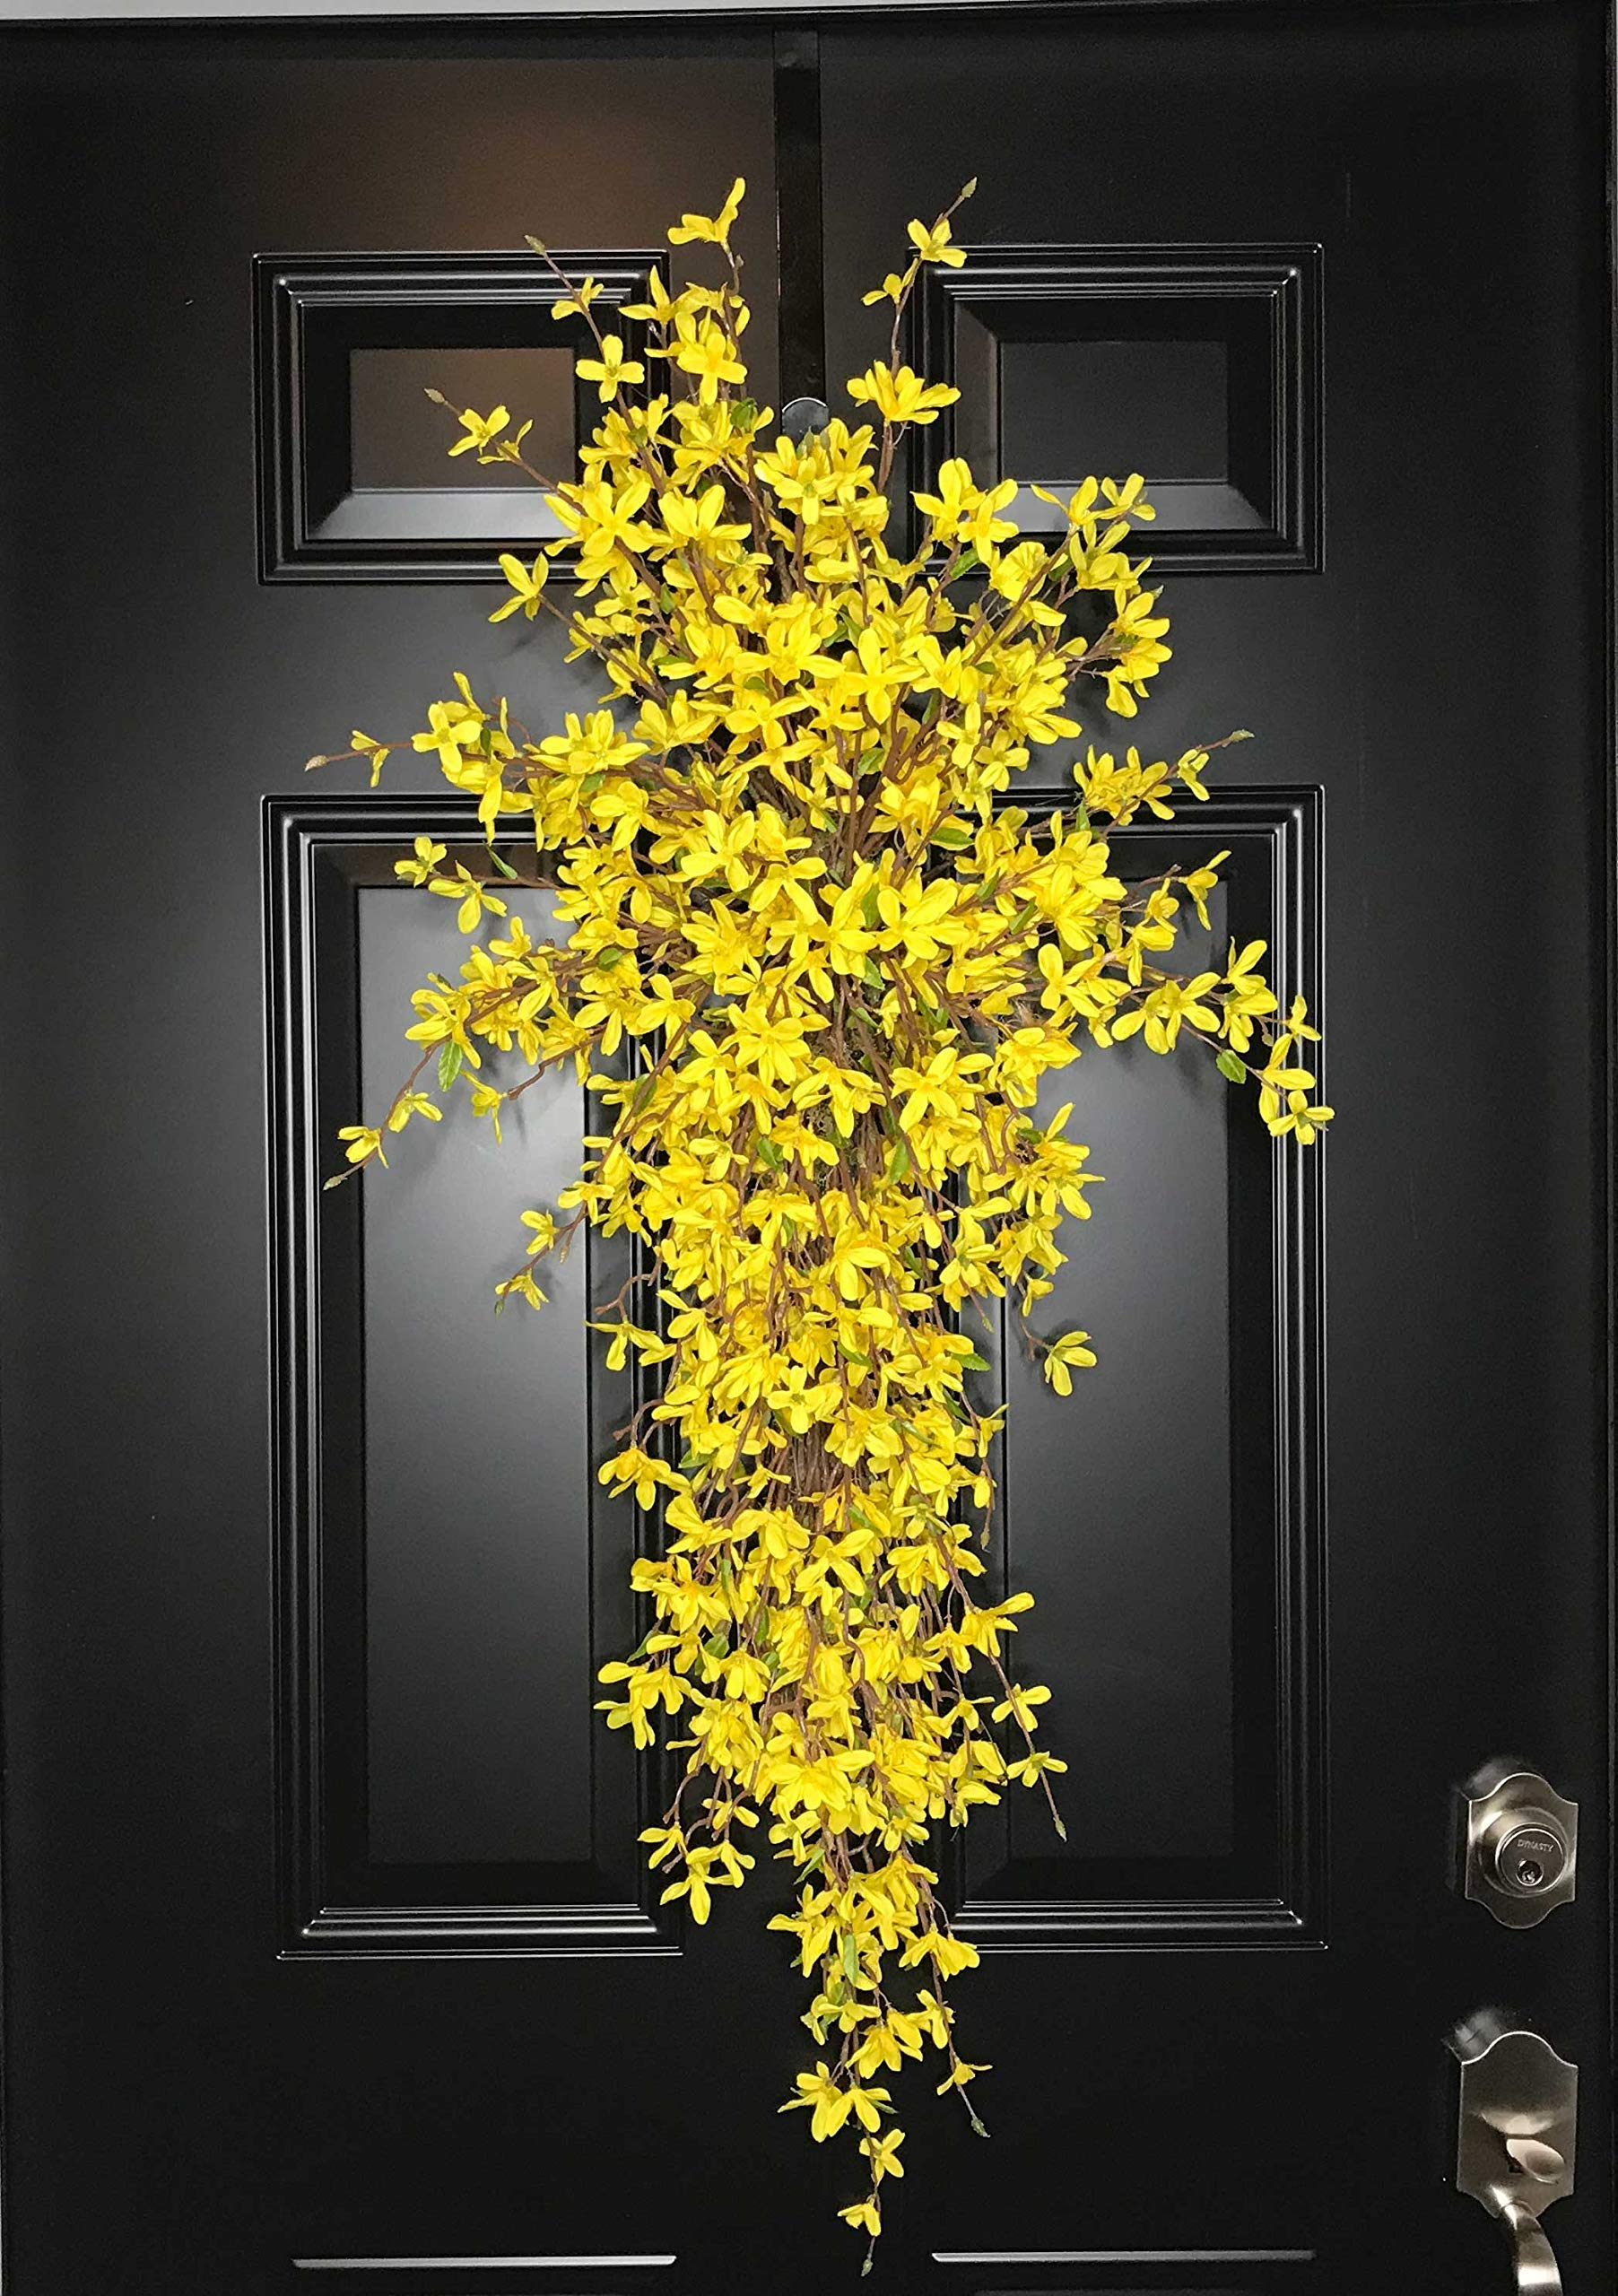 Extra Large Forsythia Floral Teardrop Swag Wreath for Front Door Porch Indoor Wall Farmhouse Decor Spring Springtime Summer Summertime Mother's Day Easter, Handmade, Yellow, 3 Sizes-42'', 36'', 30'' L by Wreath and Vine, LLC (Image #6)